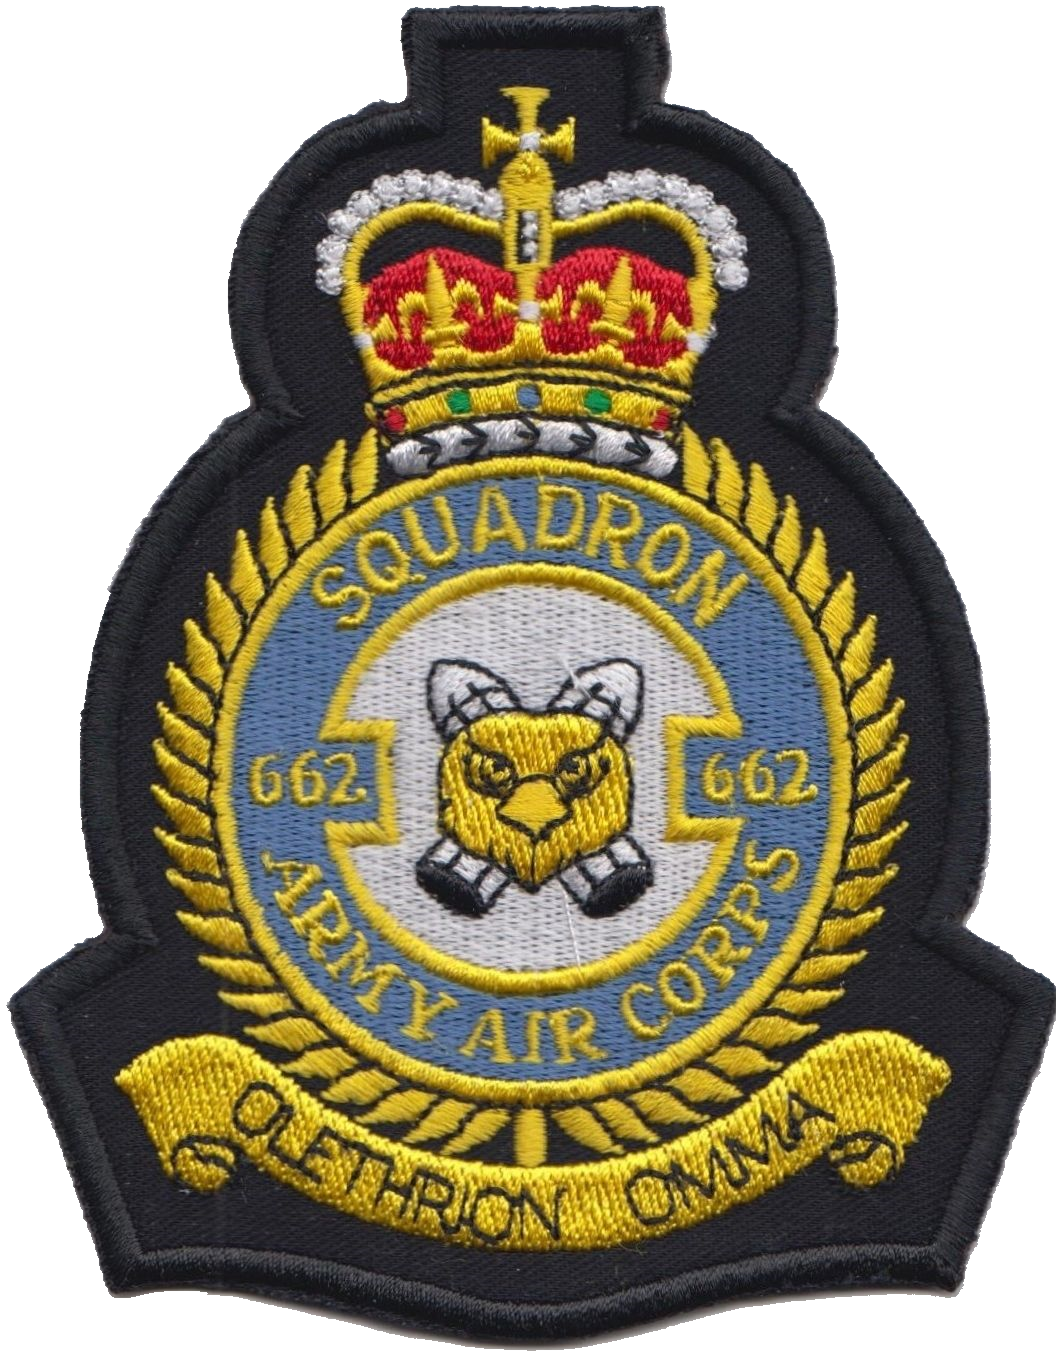 662 Squadron British Army Air Corps AAC Crest MOD Embroidered Patch